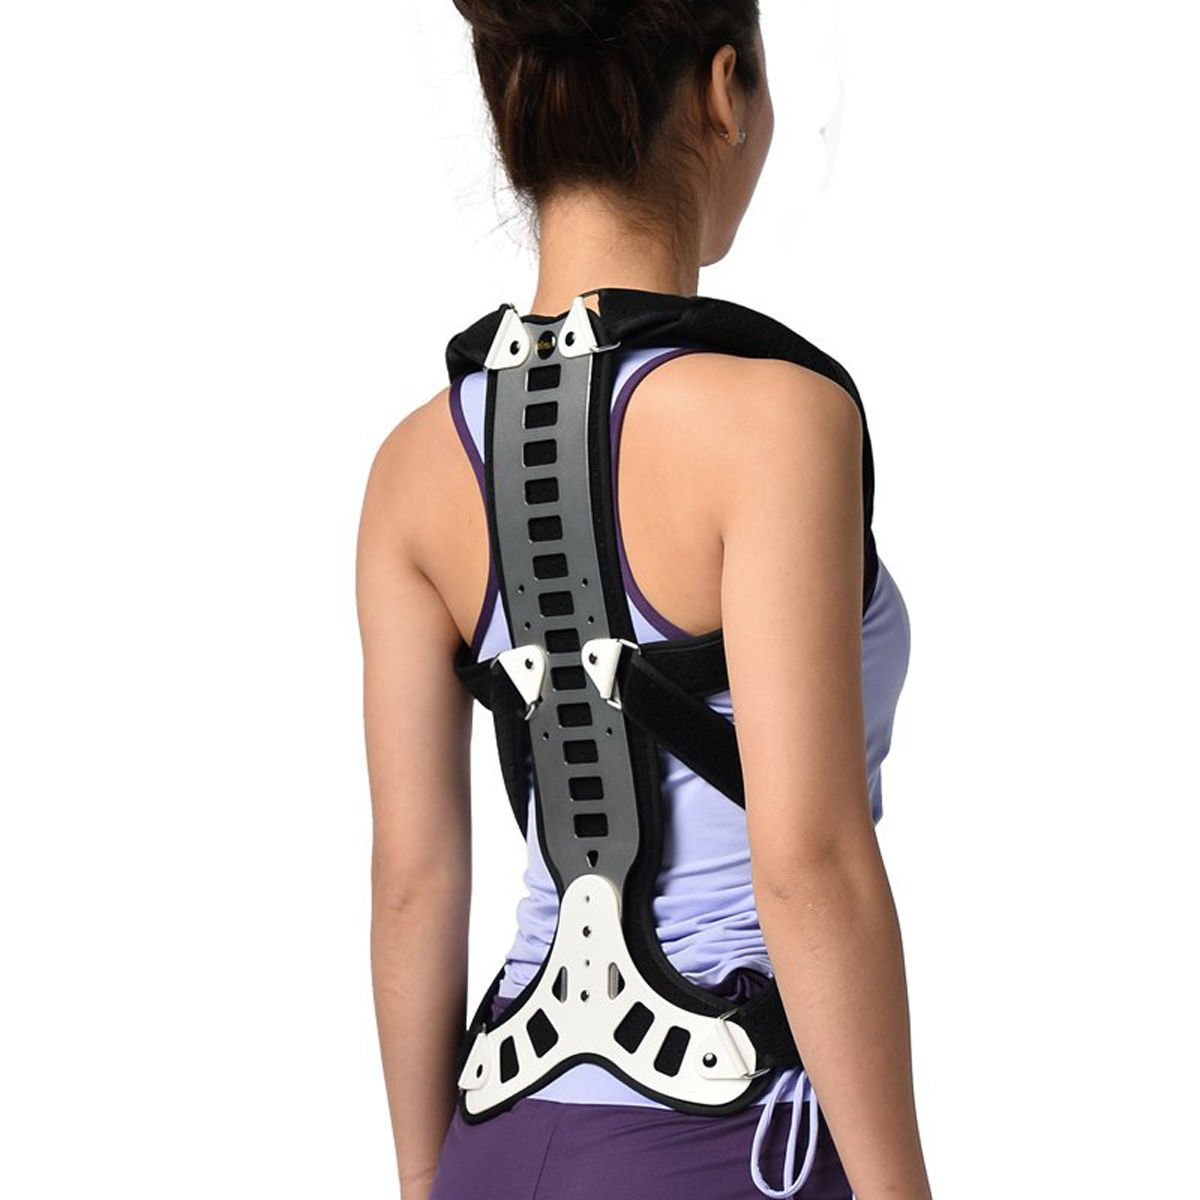 Slimerence Metal Back Posture Corrector, Spinal Brace Support Recover, Humpback Correction, Back Shoulder, Neck Pain Relief, Spinal Cord Posture Support, Adjustable, Periarthritis S